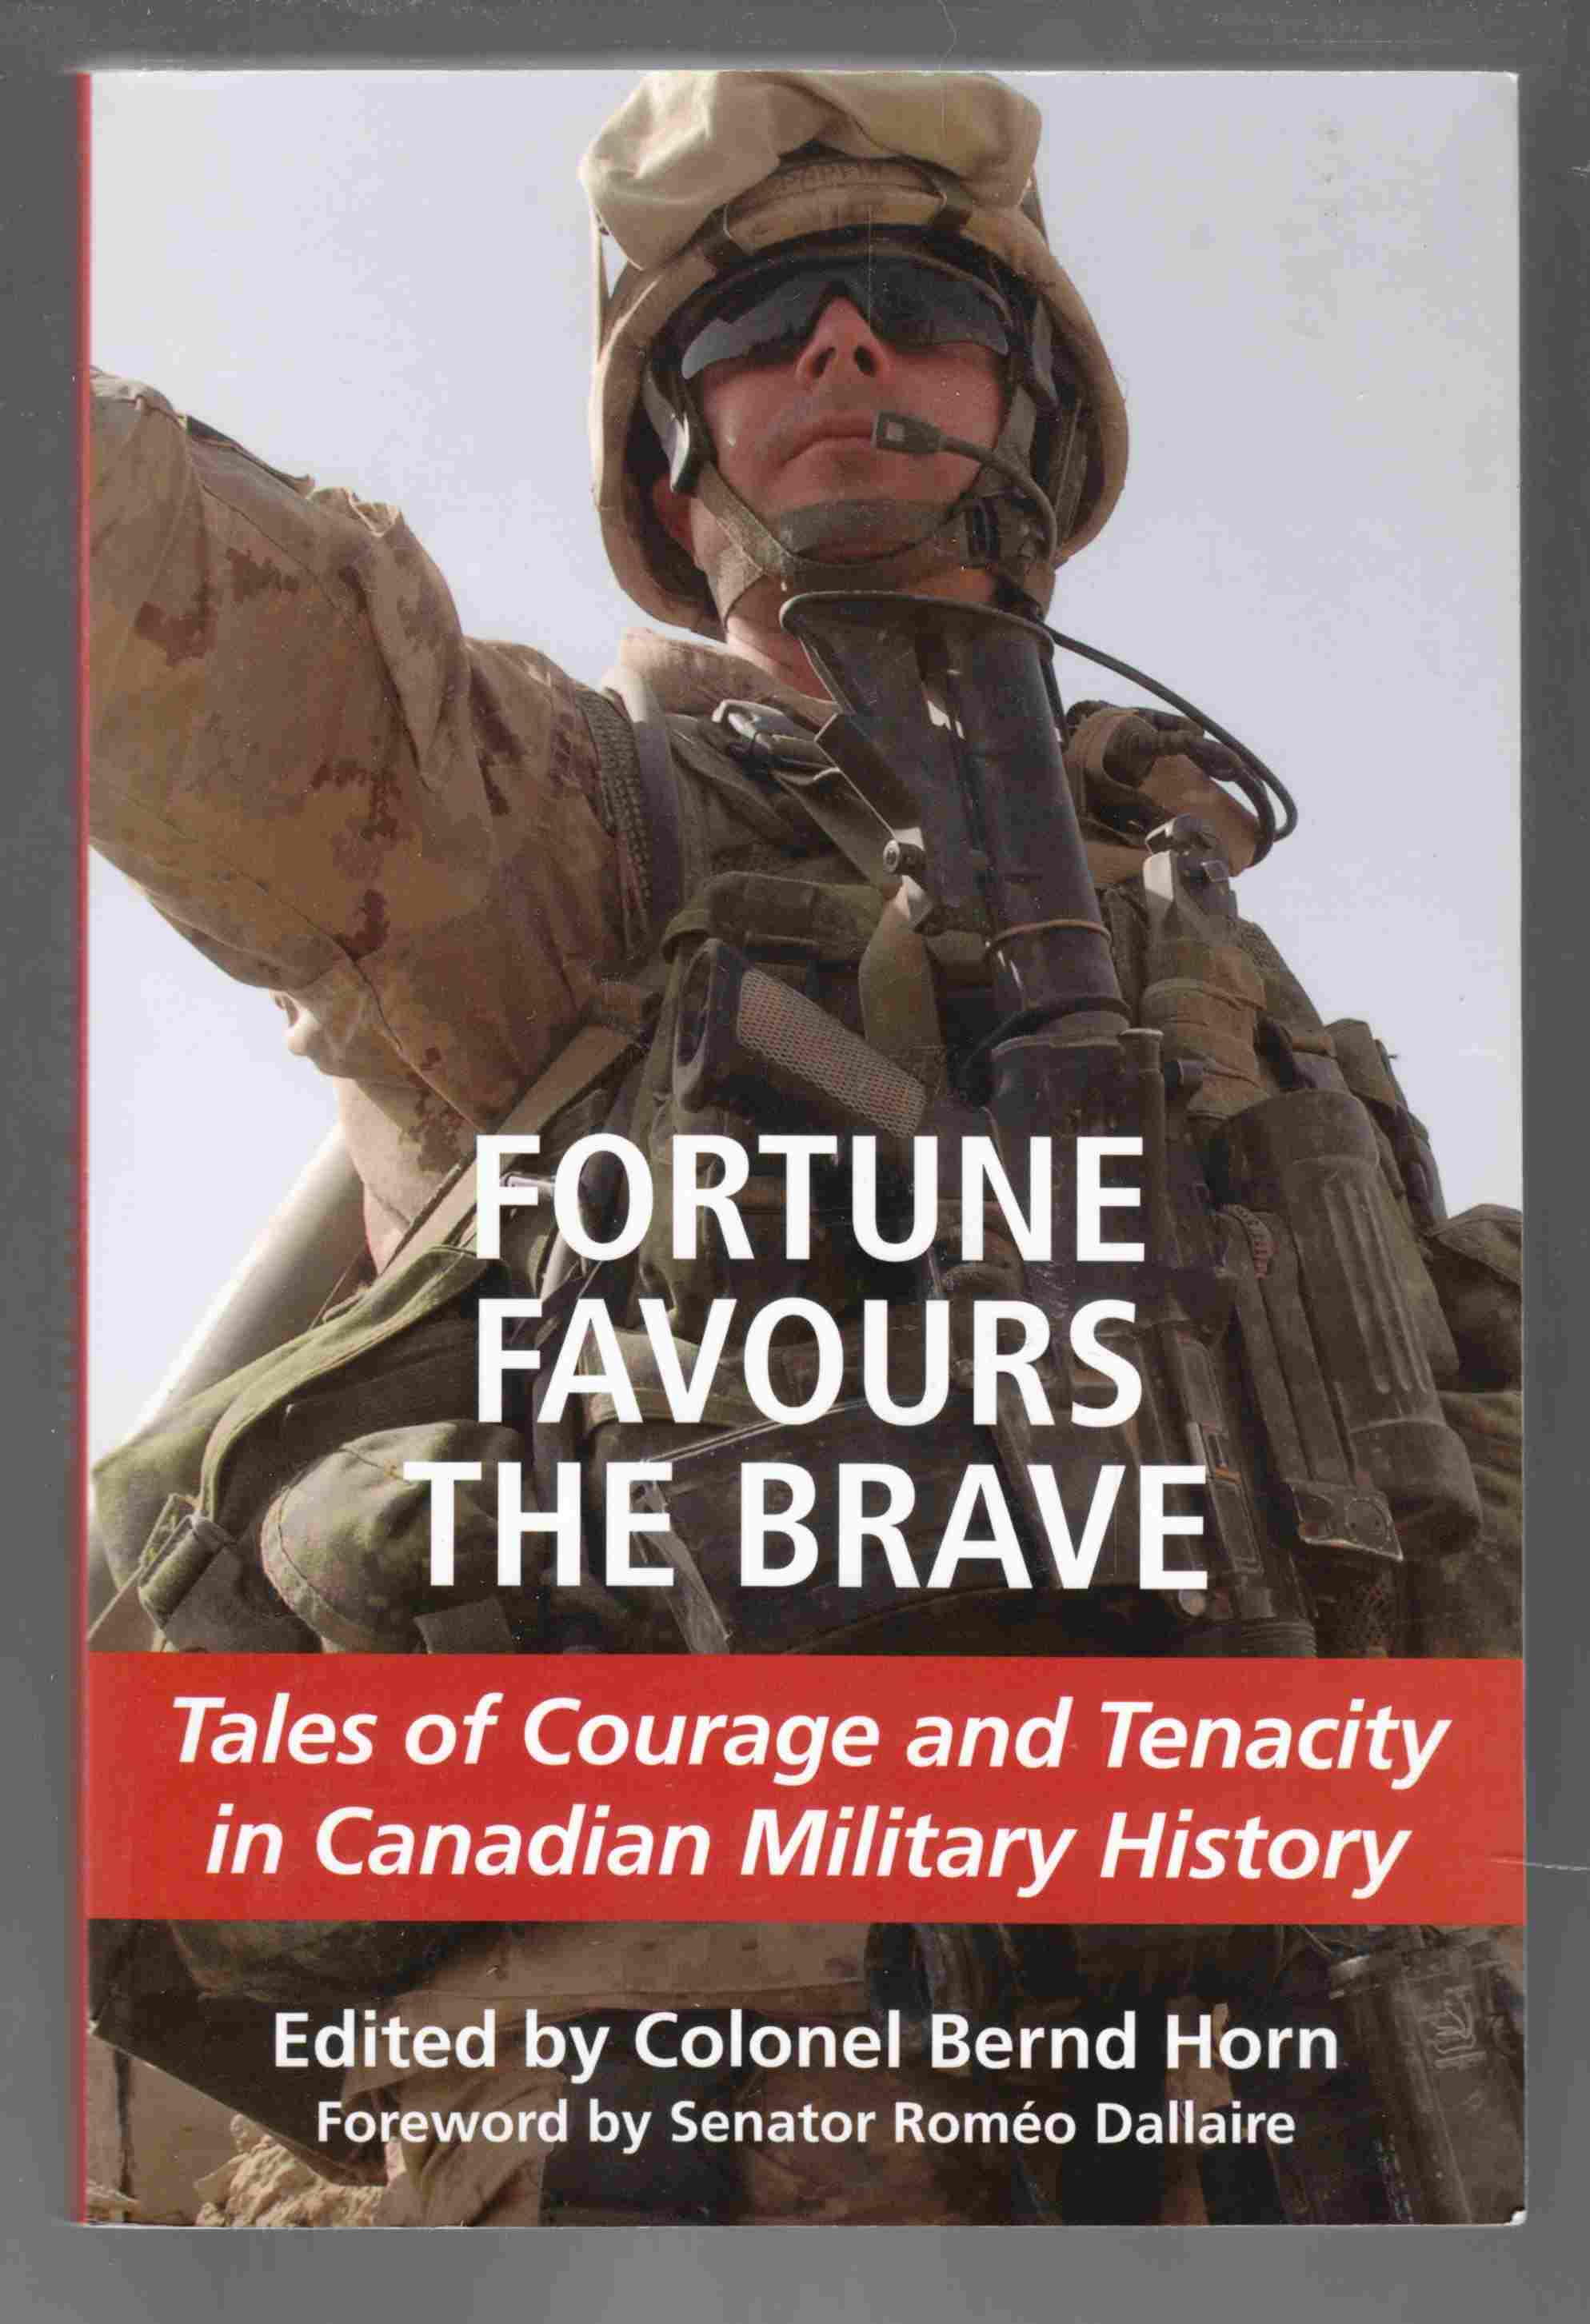 Image for Fortune Favours the Brave Tales of Courage and Tenacity in Canadian Military History